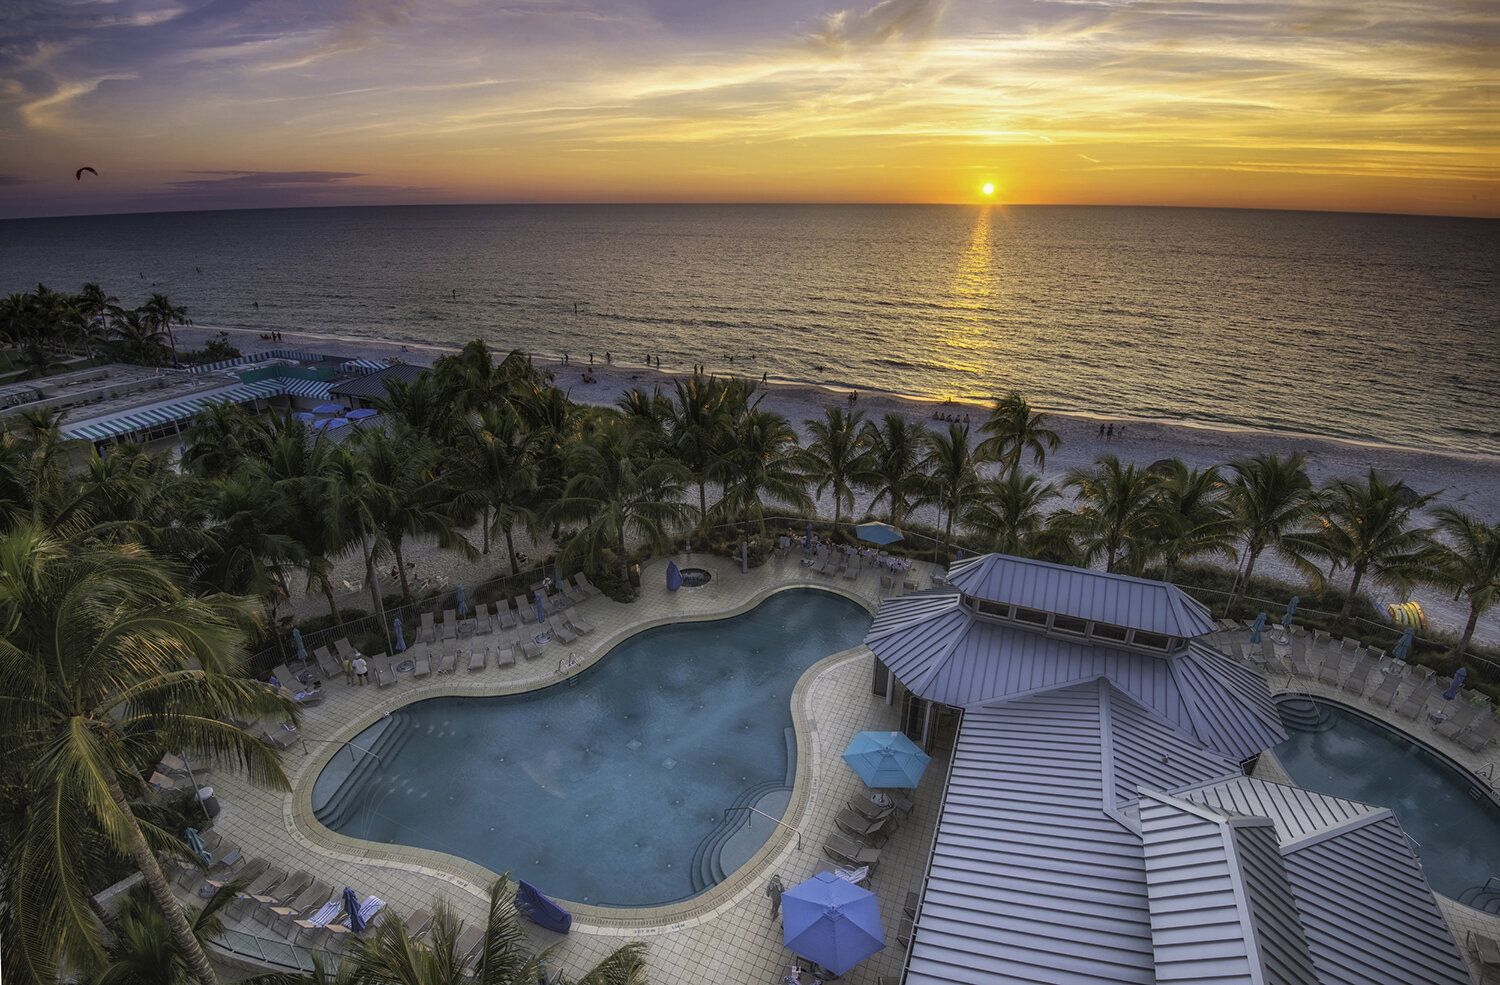 Designed in classic Florida style, the resort includes a beachfront pool complex with two pools.